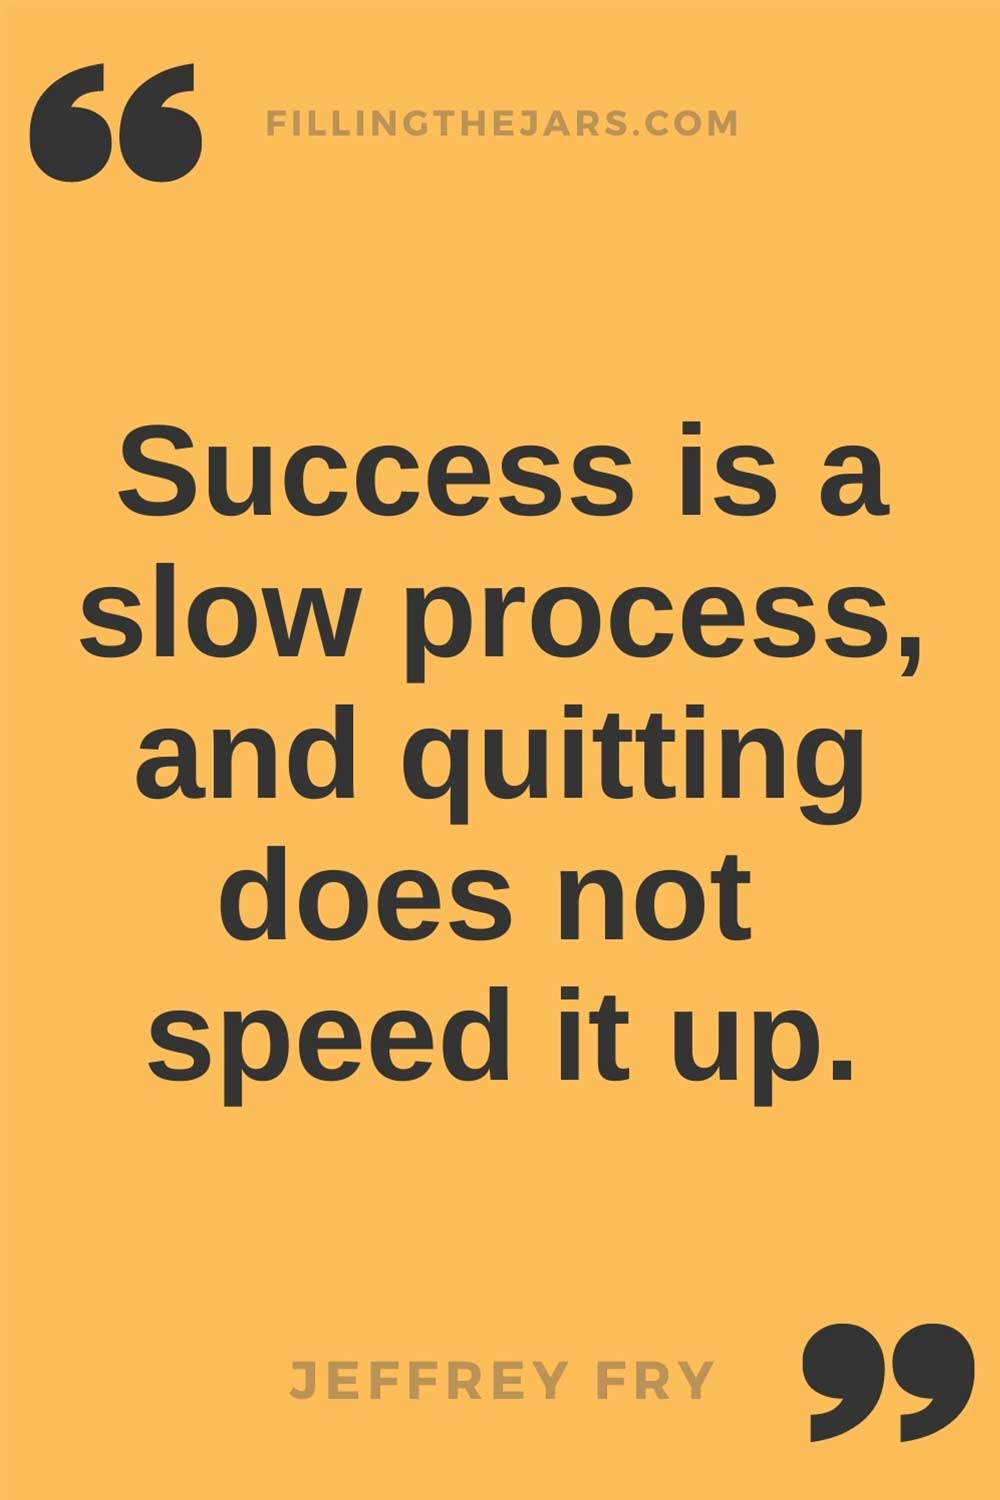 Jeffrey Fry success is a slow process quote in black text on orange background.